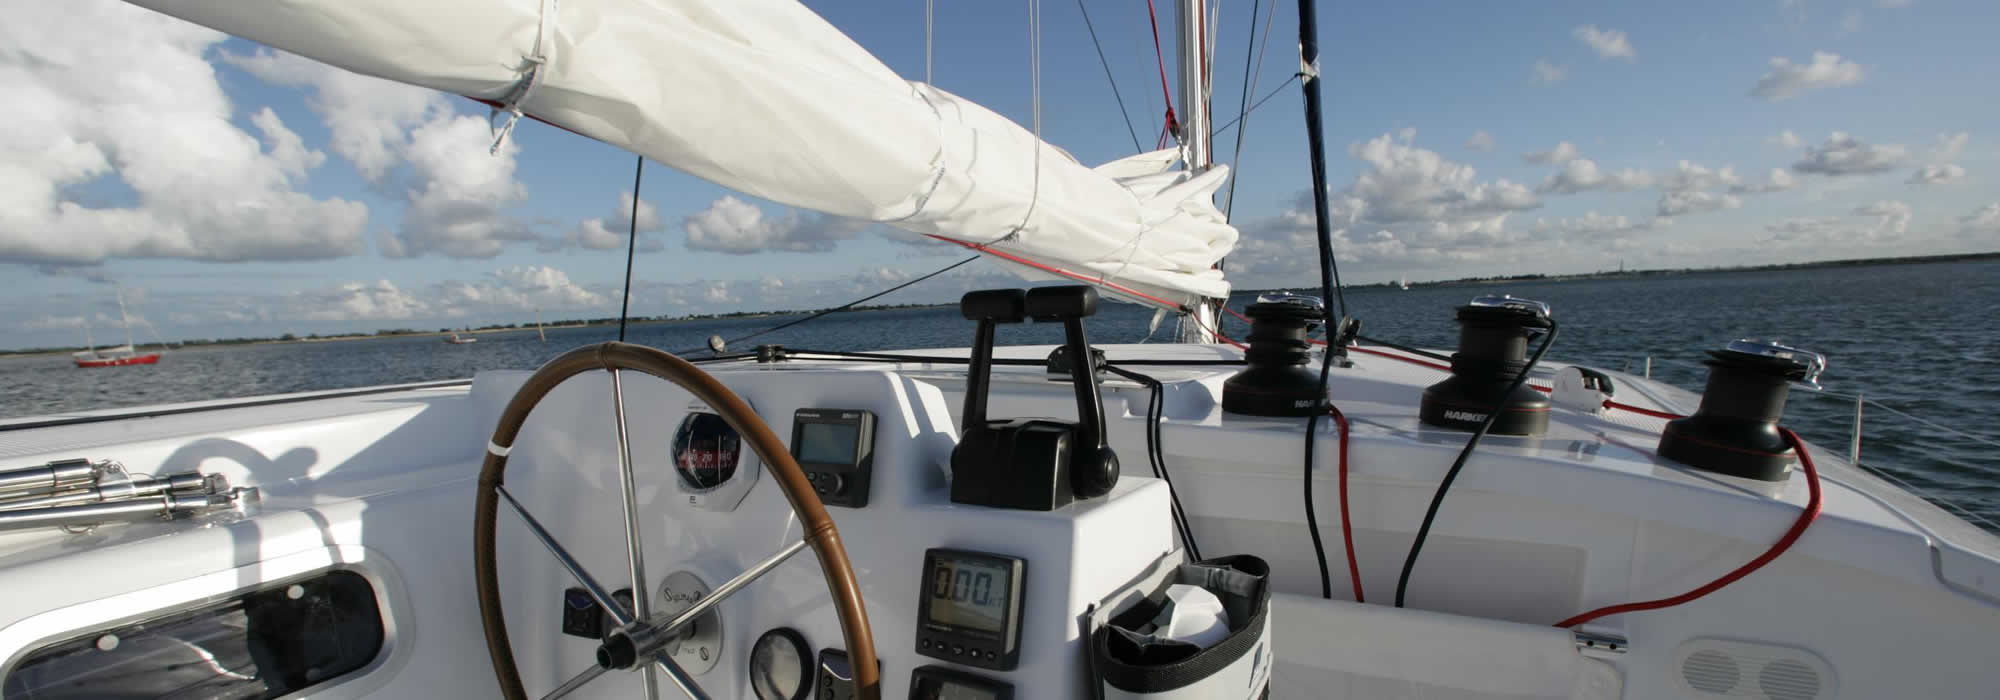 Catamaran crewed charter